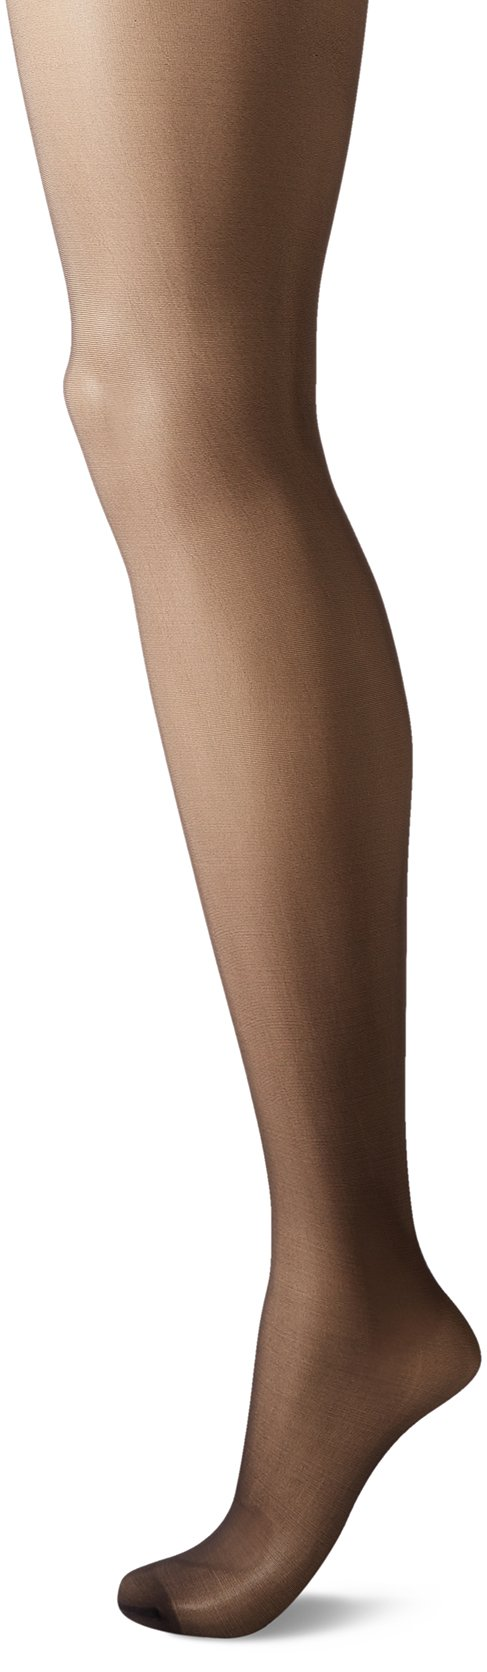 CK Women's Matte Ultra Sheer Pantyhose with Control Top, Almost Black, Size B